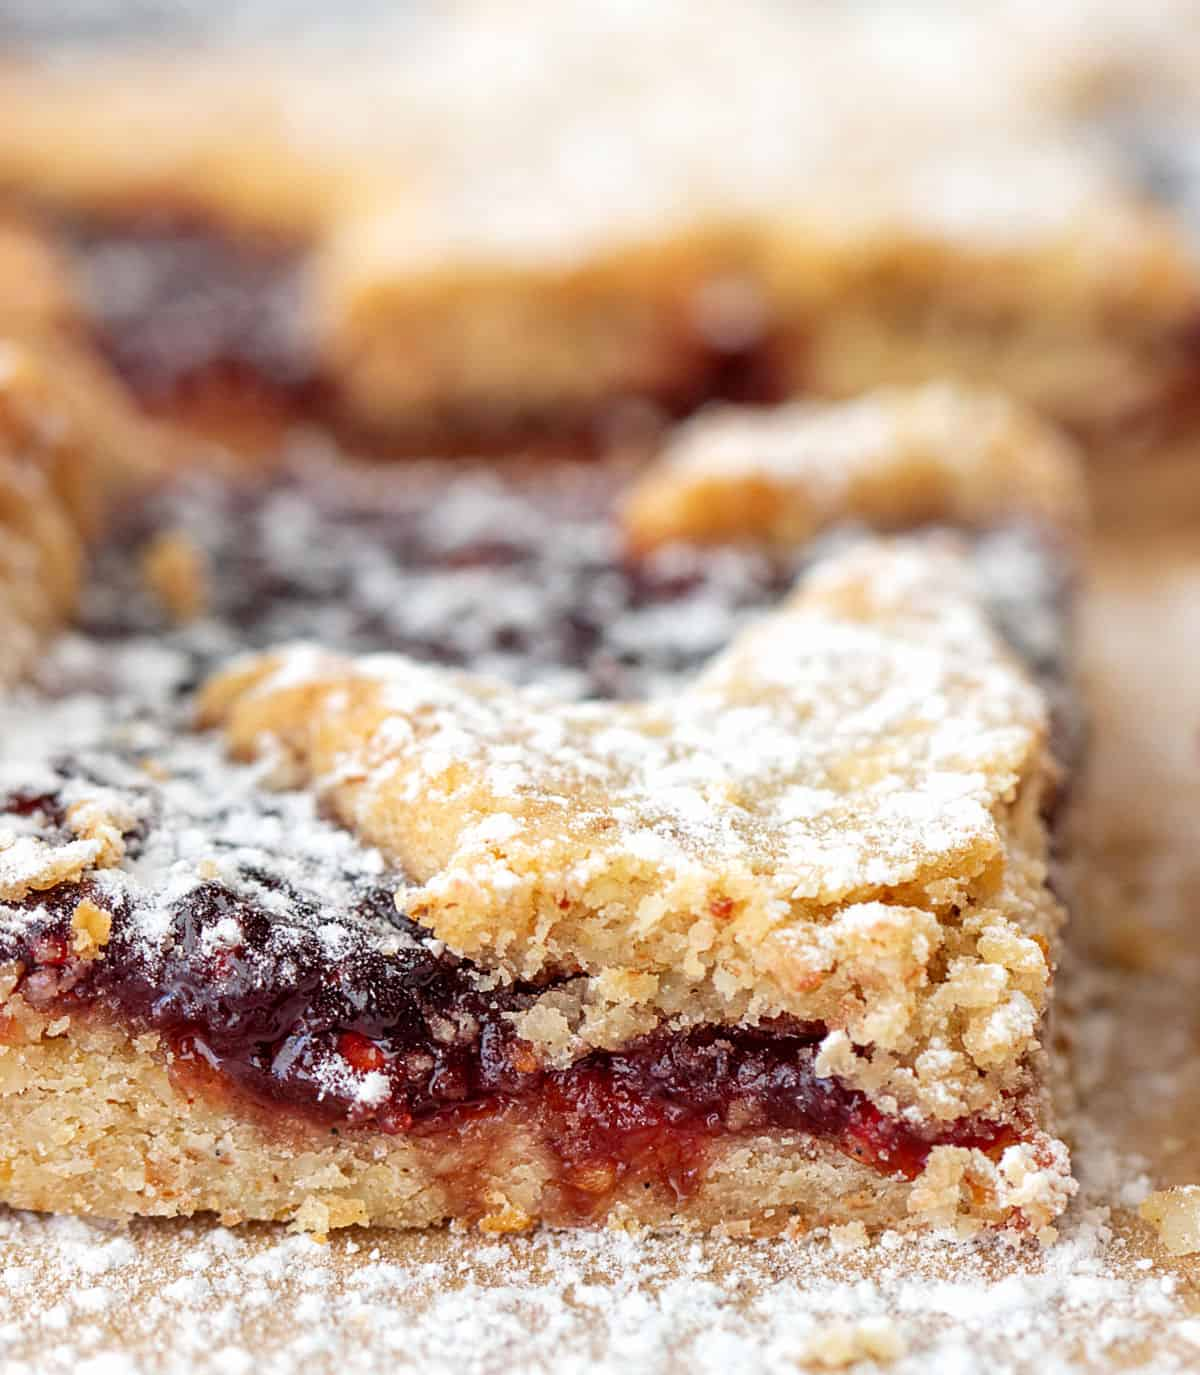 Close up of linzer square with raspberry jam and crumbly dough dusted with powdered sugar